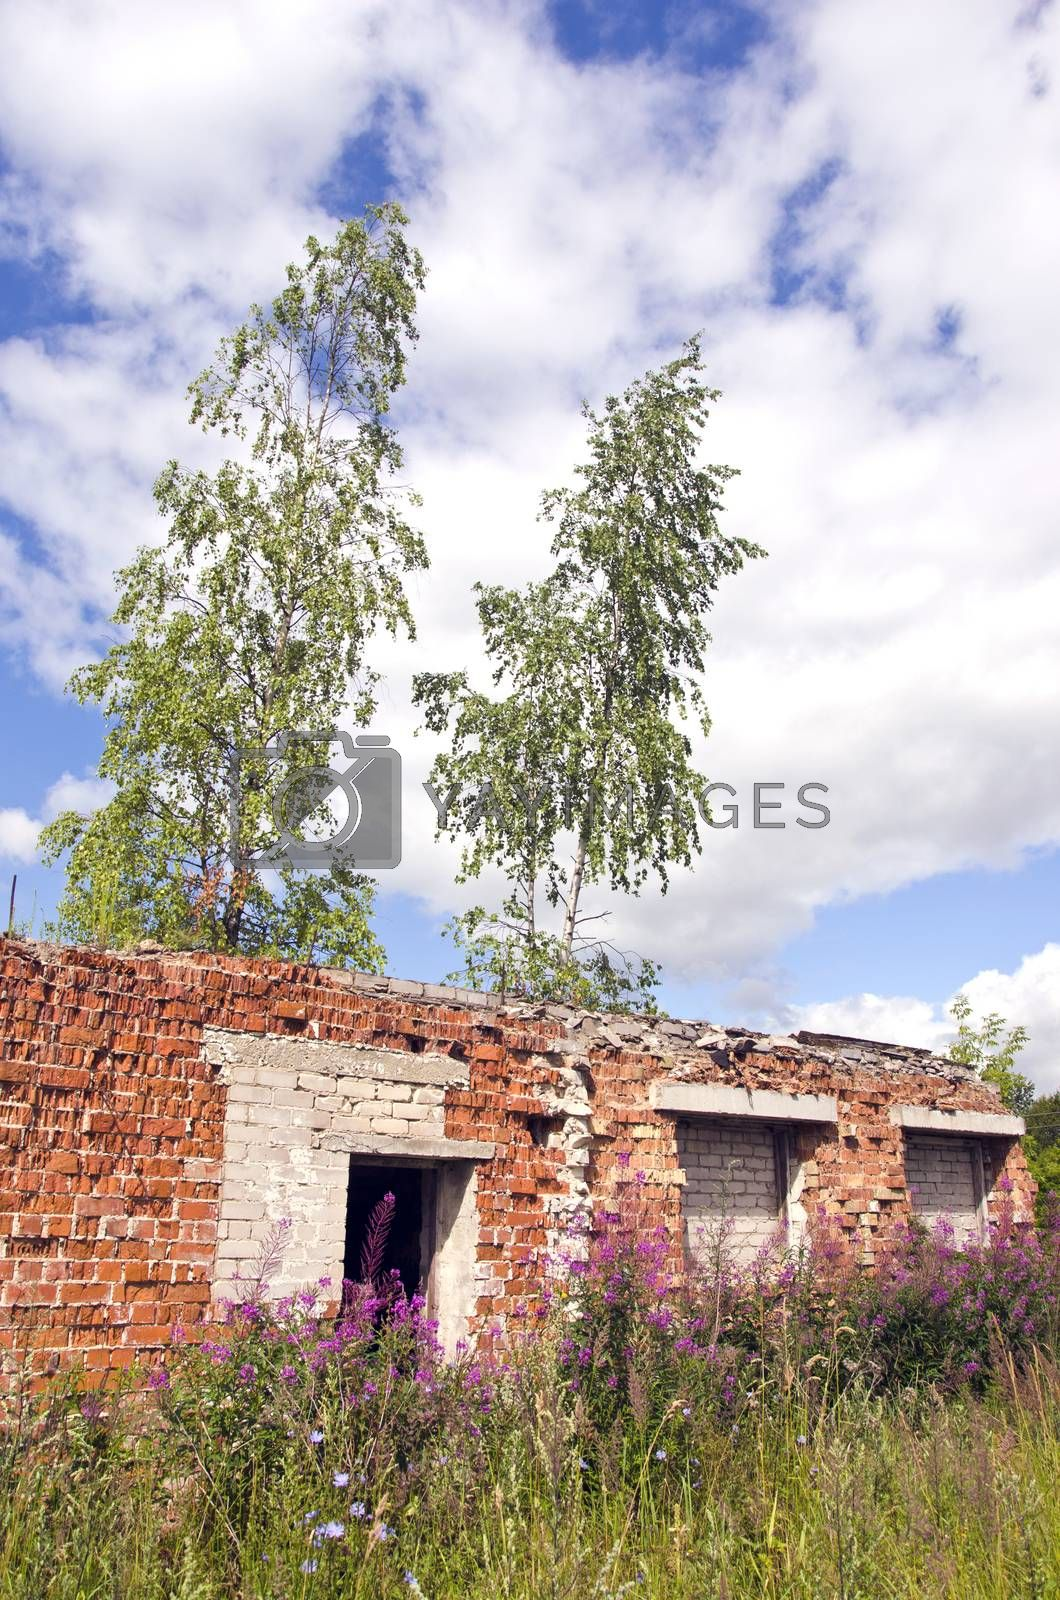 Royalty free image of Desolate roofless and windowless brick house ruins by alis_photo